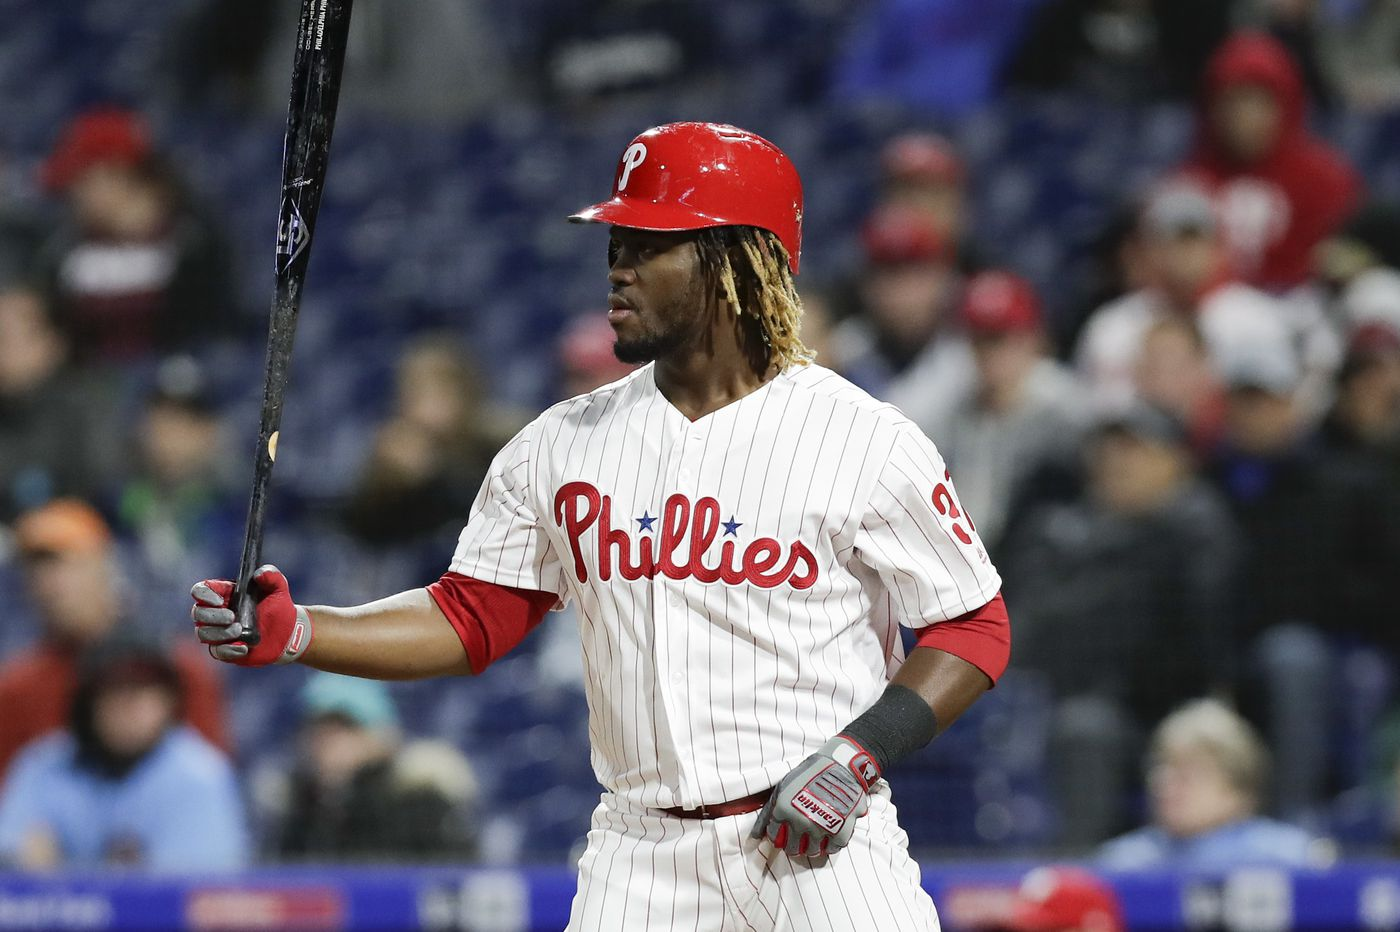 Odubel Herrera's prolonged struggles are 'something to keep an eye on'